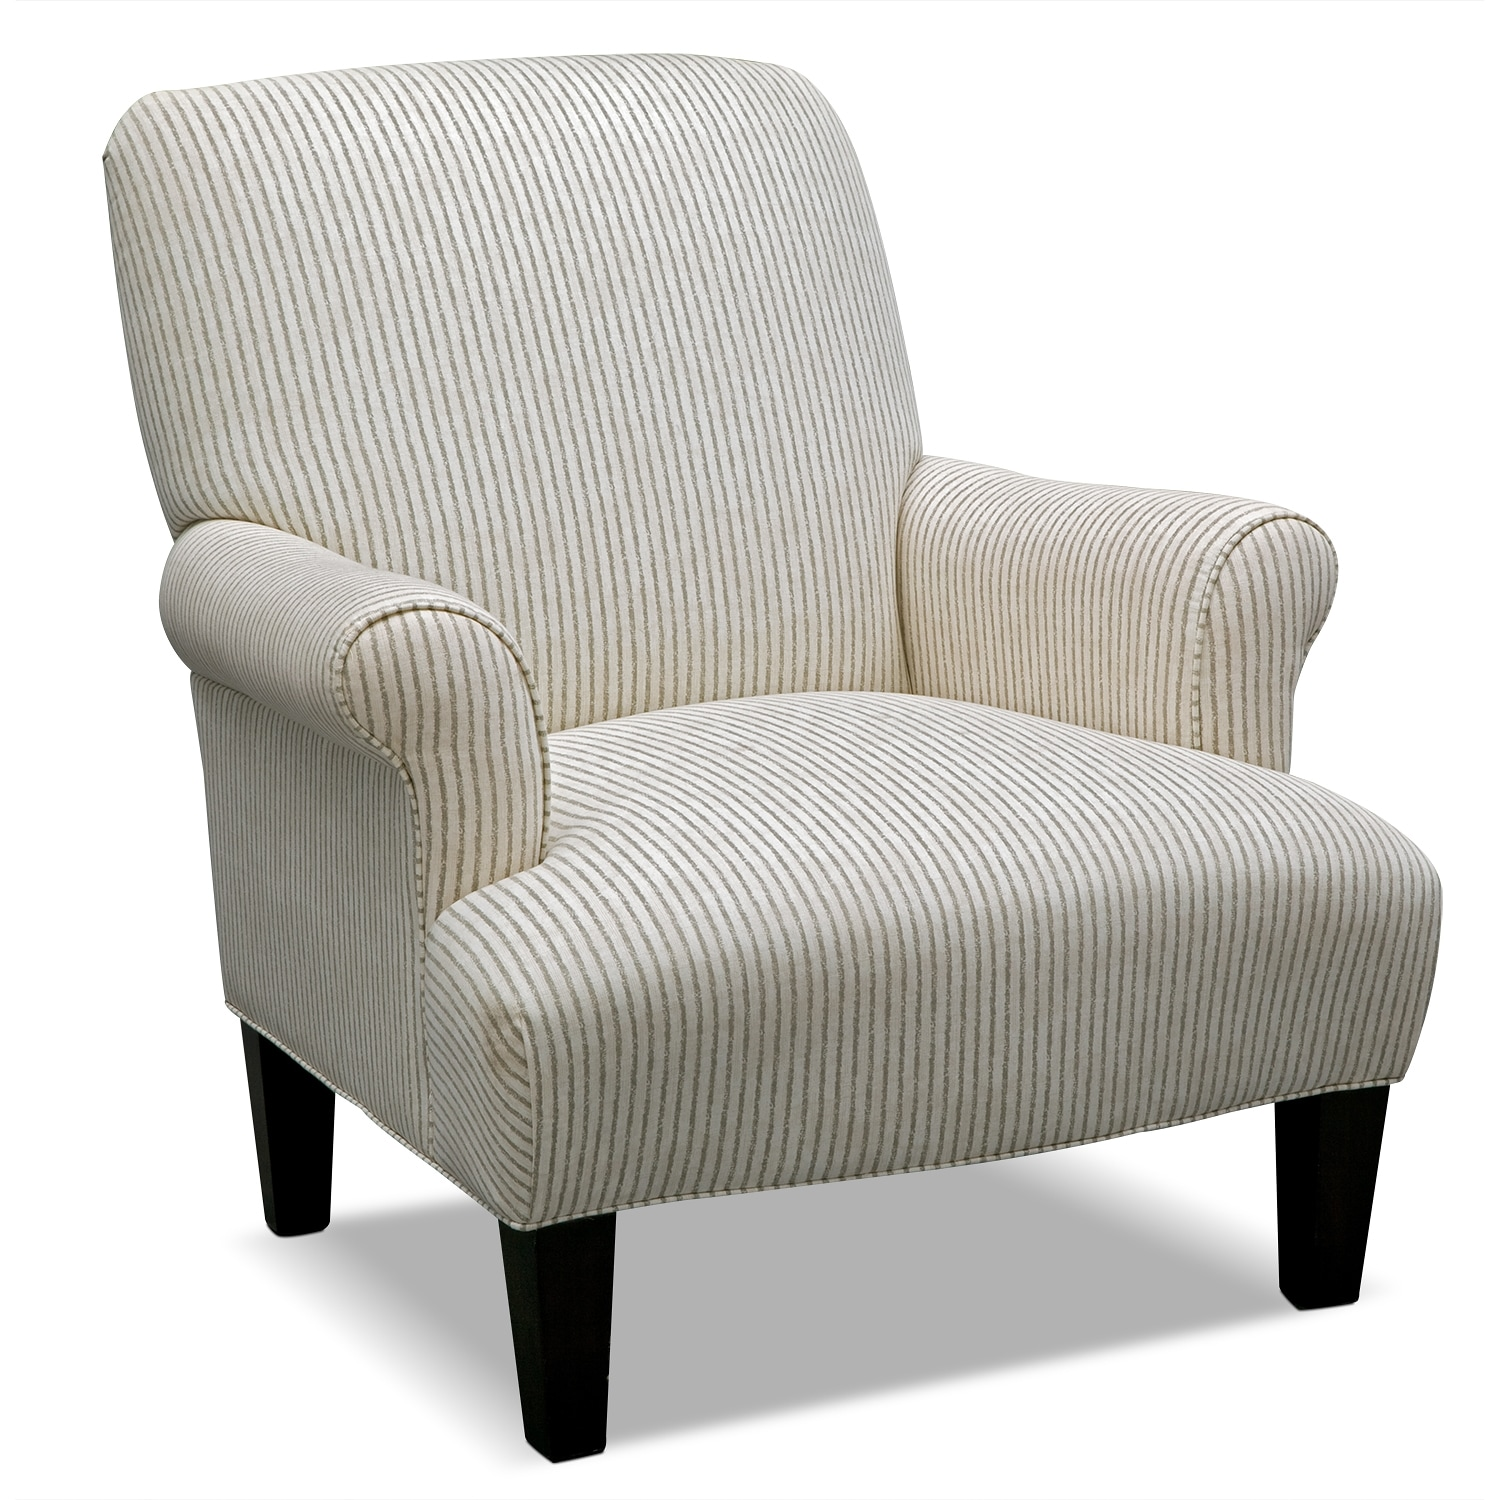 Hadley upholstery 3 pc living room w accent chair for Living room chairs